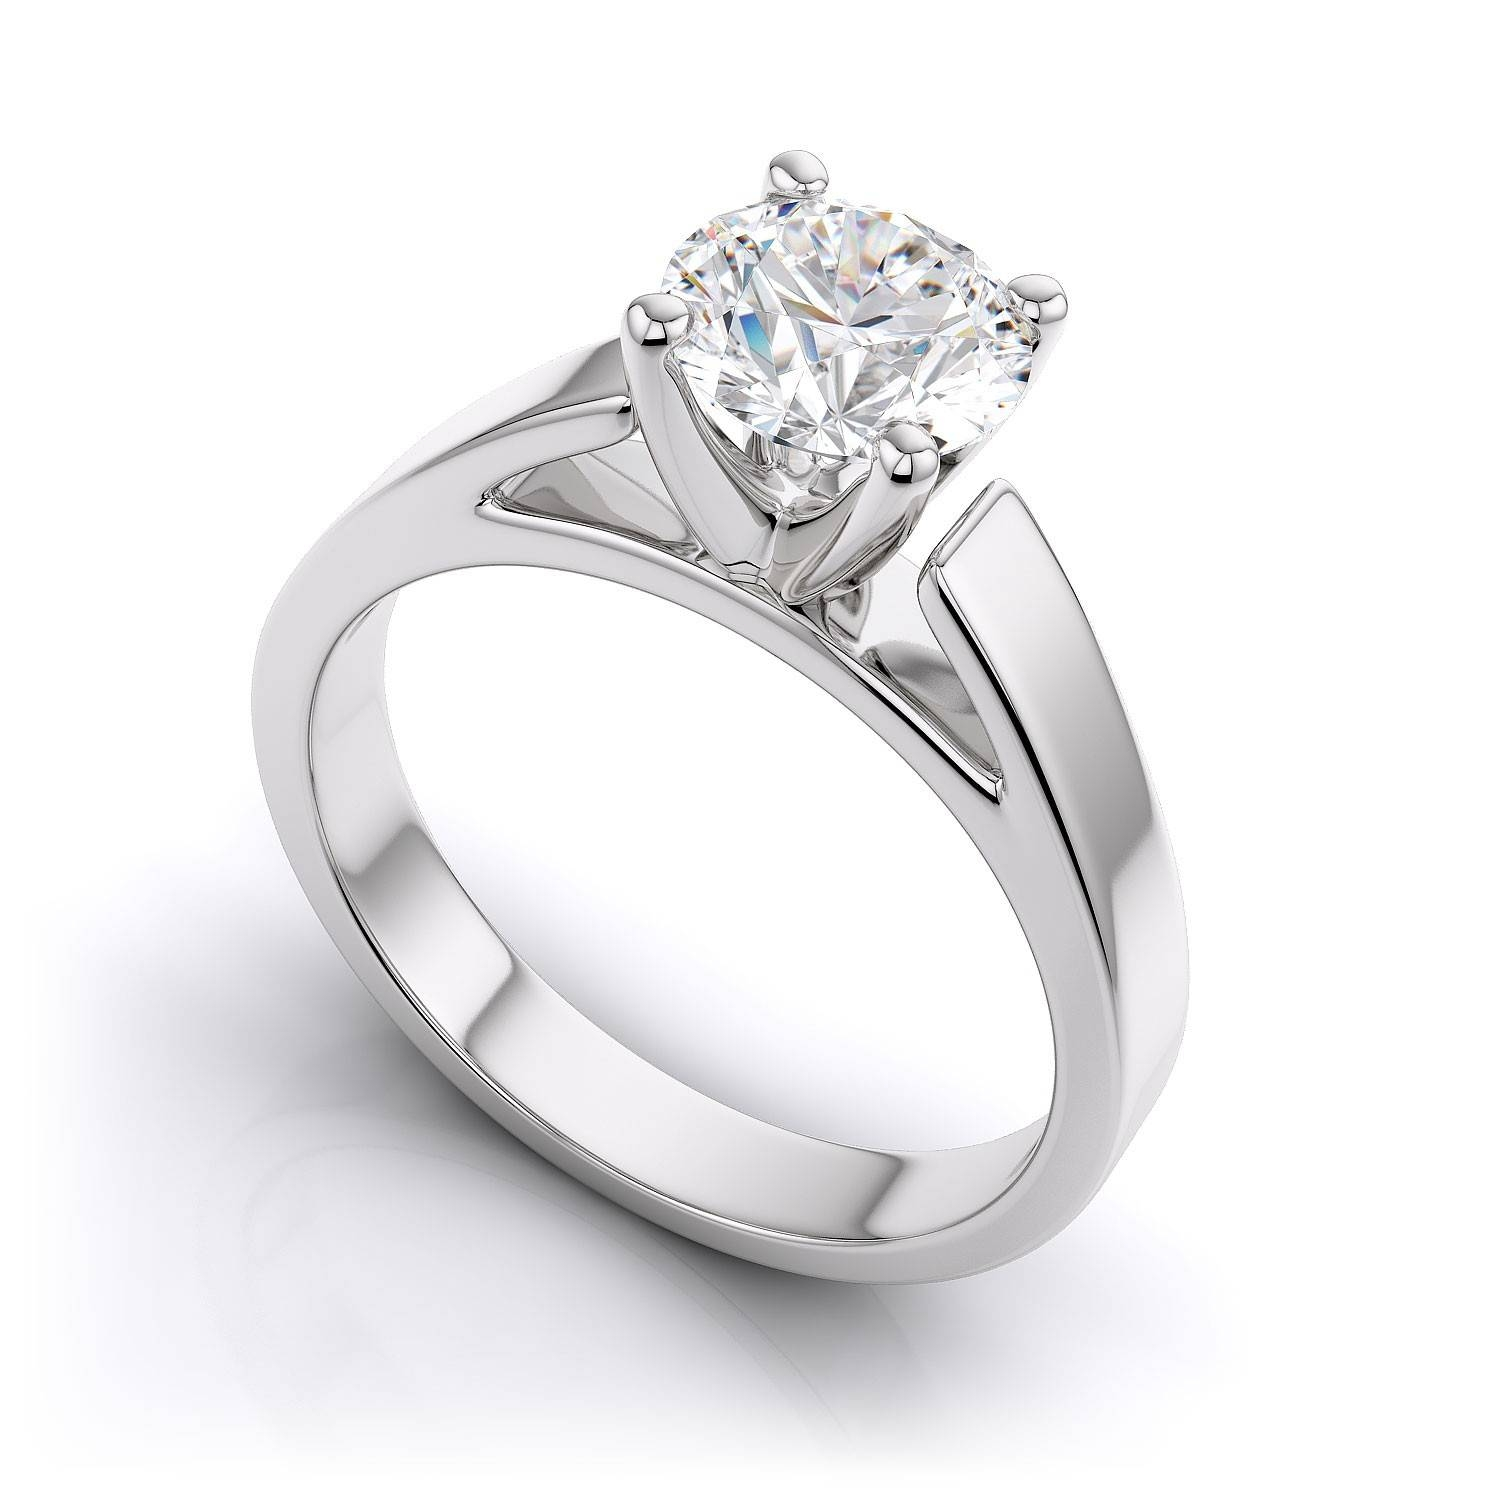 Tapered Cathedral Solitaire Engagement Ring – 14k White Gold Inside Diamond Wedding Rings Settings (View 12 of 15)